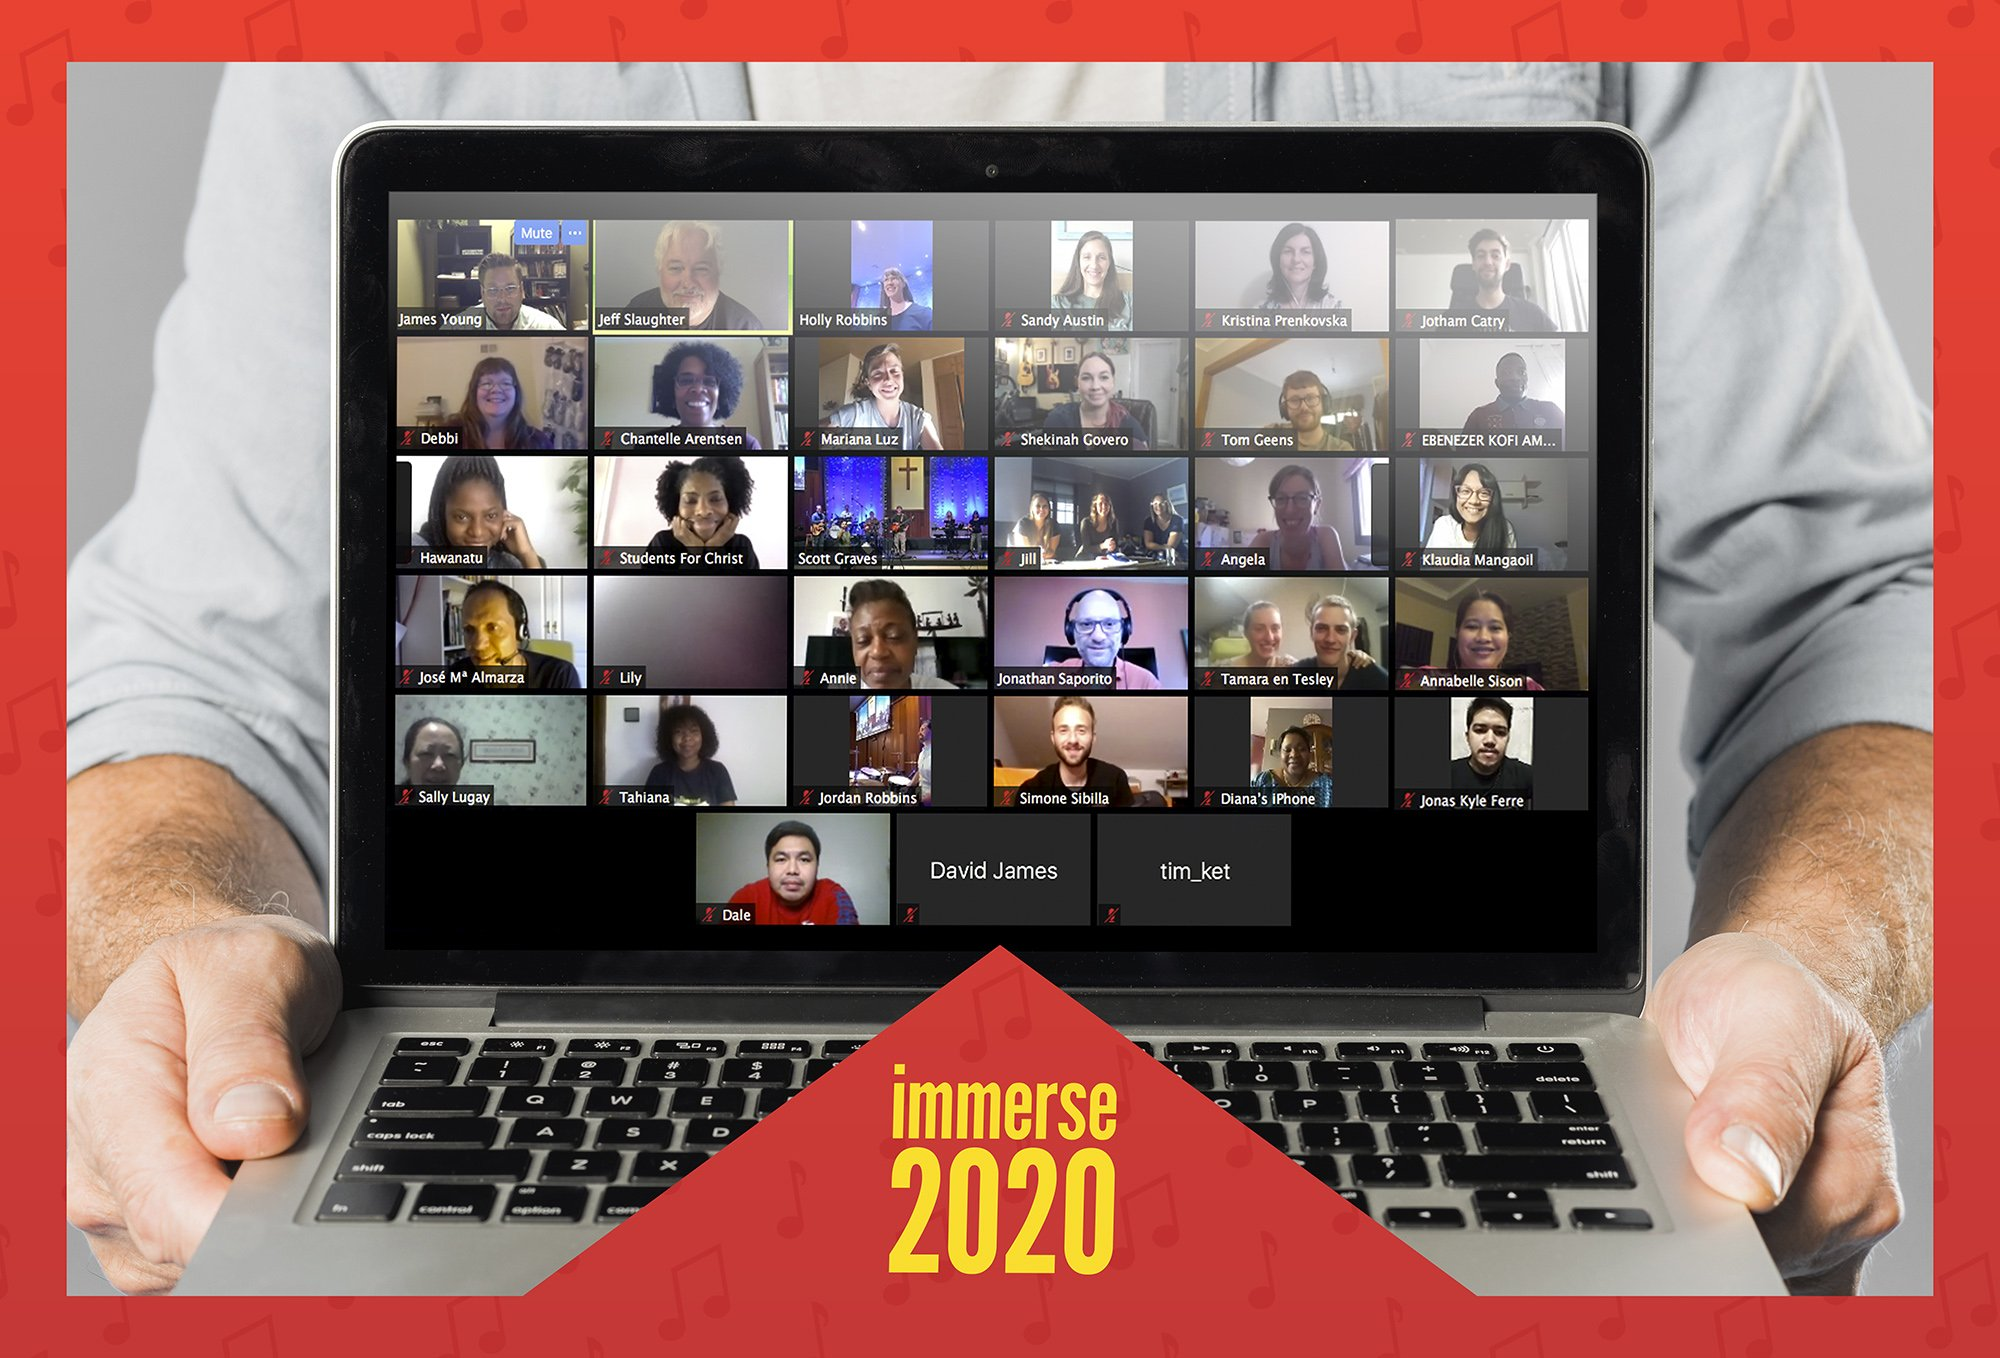 Immerse 2020 Serves 54 Leaders In 10 Nations